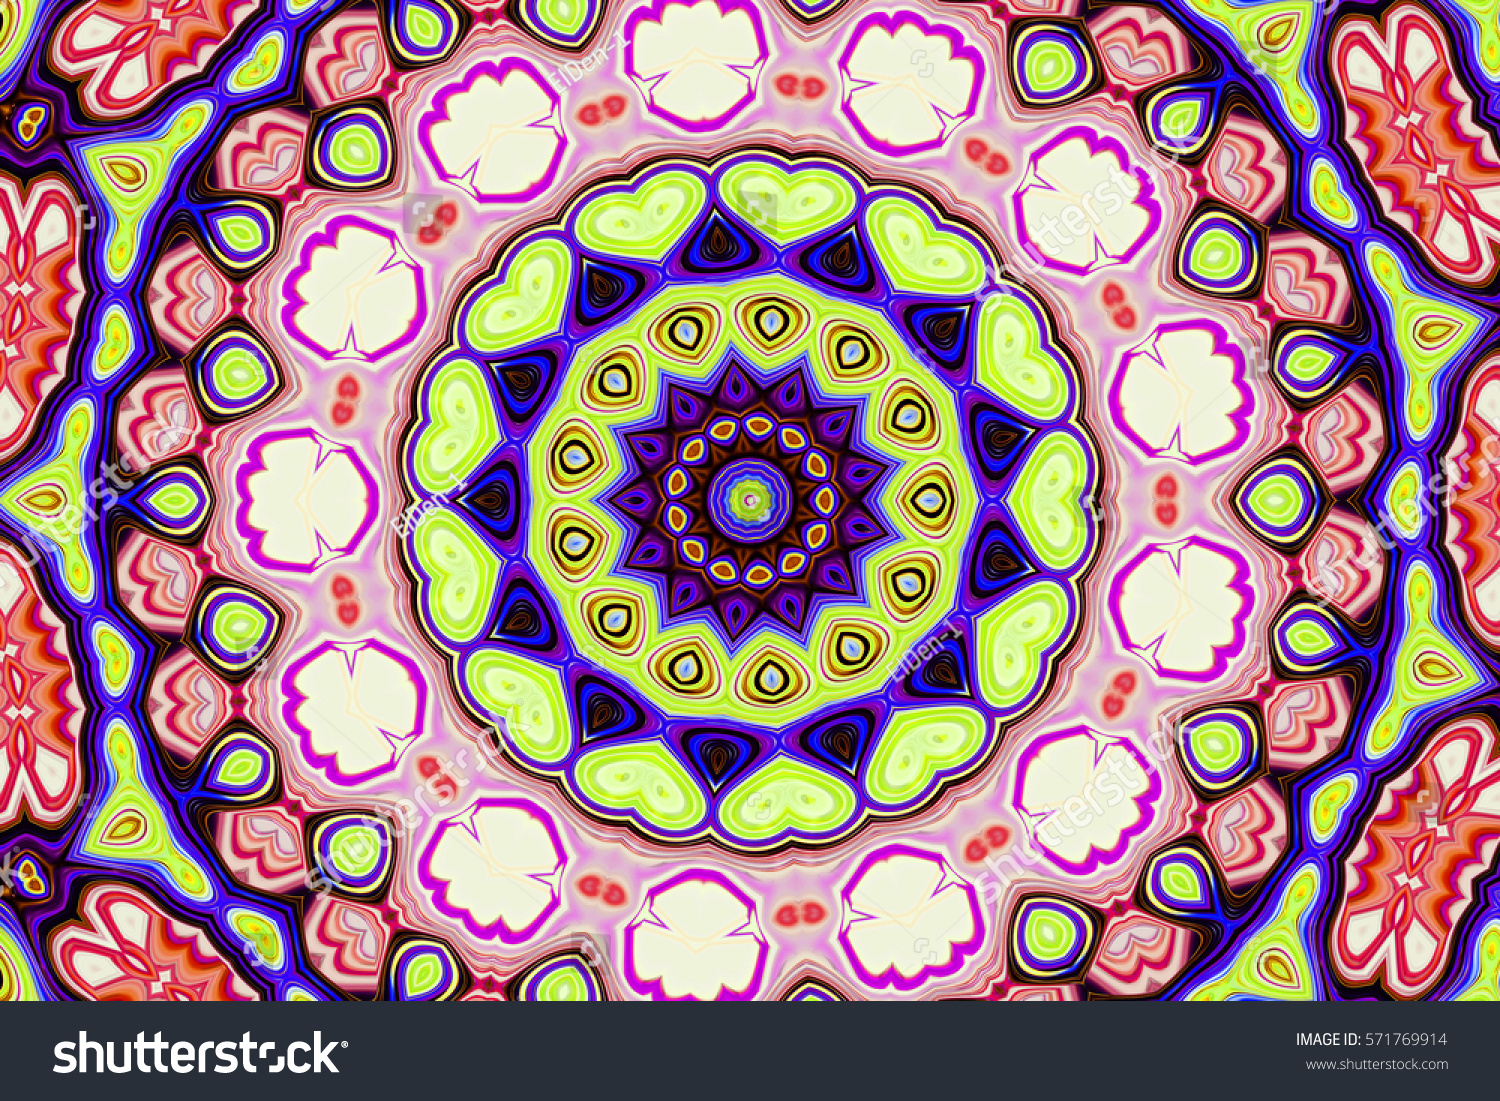 Cool Wallpaper Marble Mandala - stock-photo-floral-mandala-on-color-background-digital-kaleidoscope-pattern-design-for-fabric-poster-571769914  Snapshot_616896.jpg